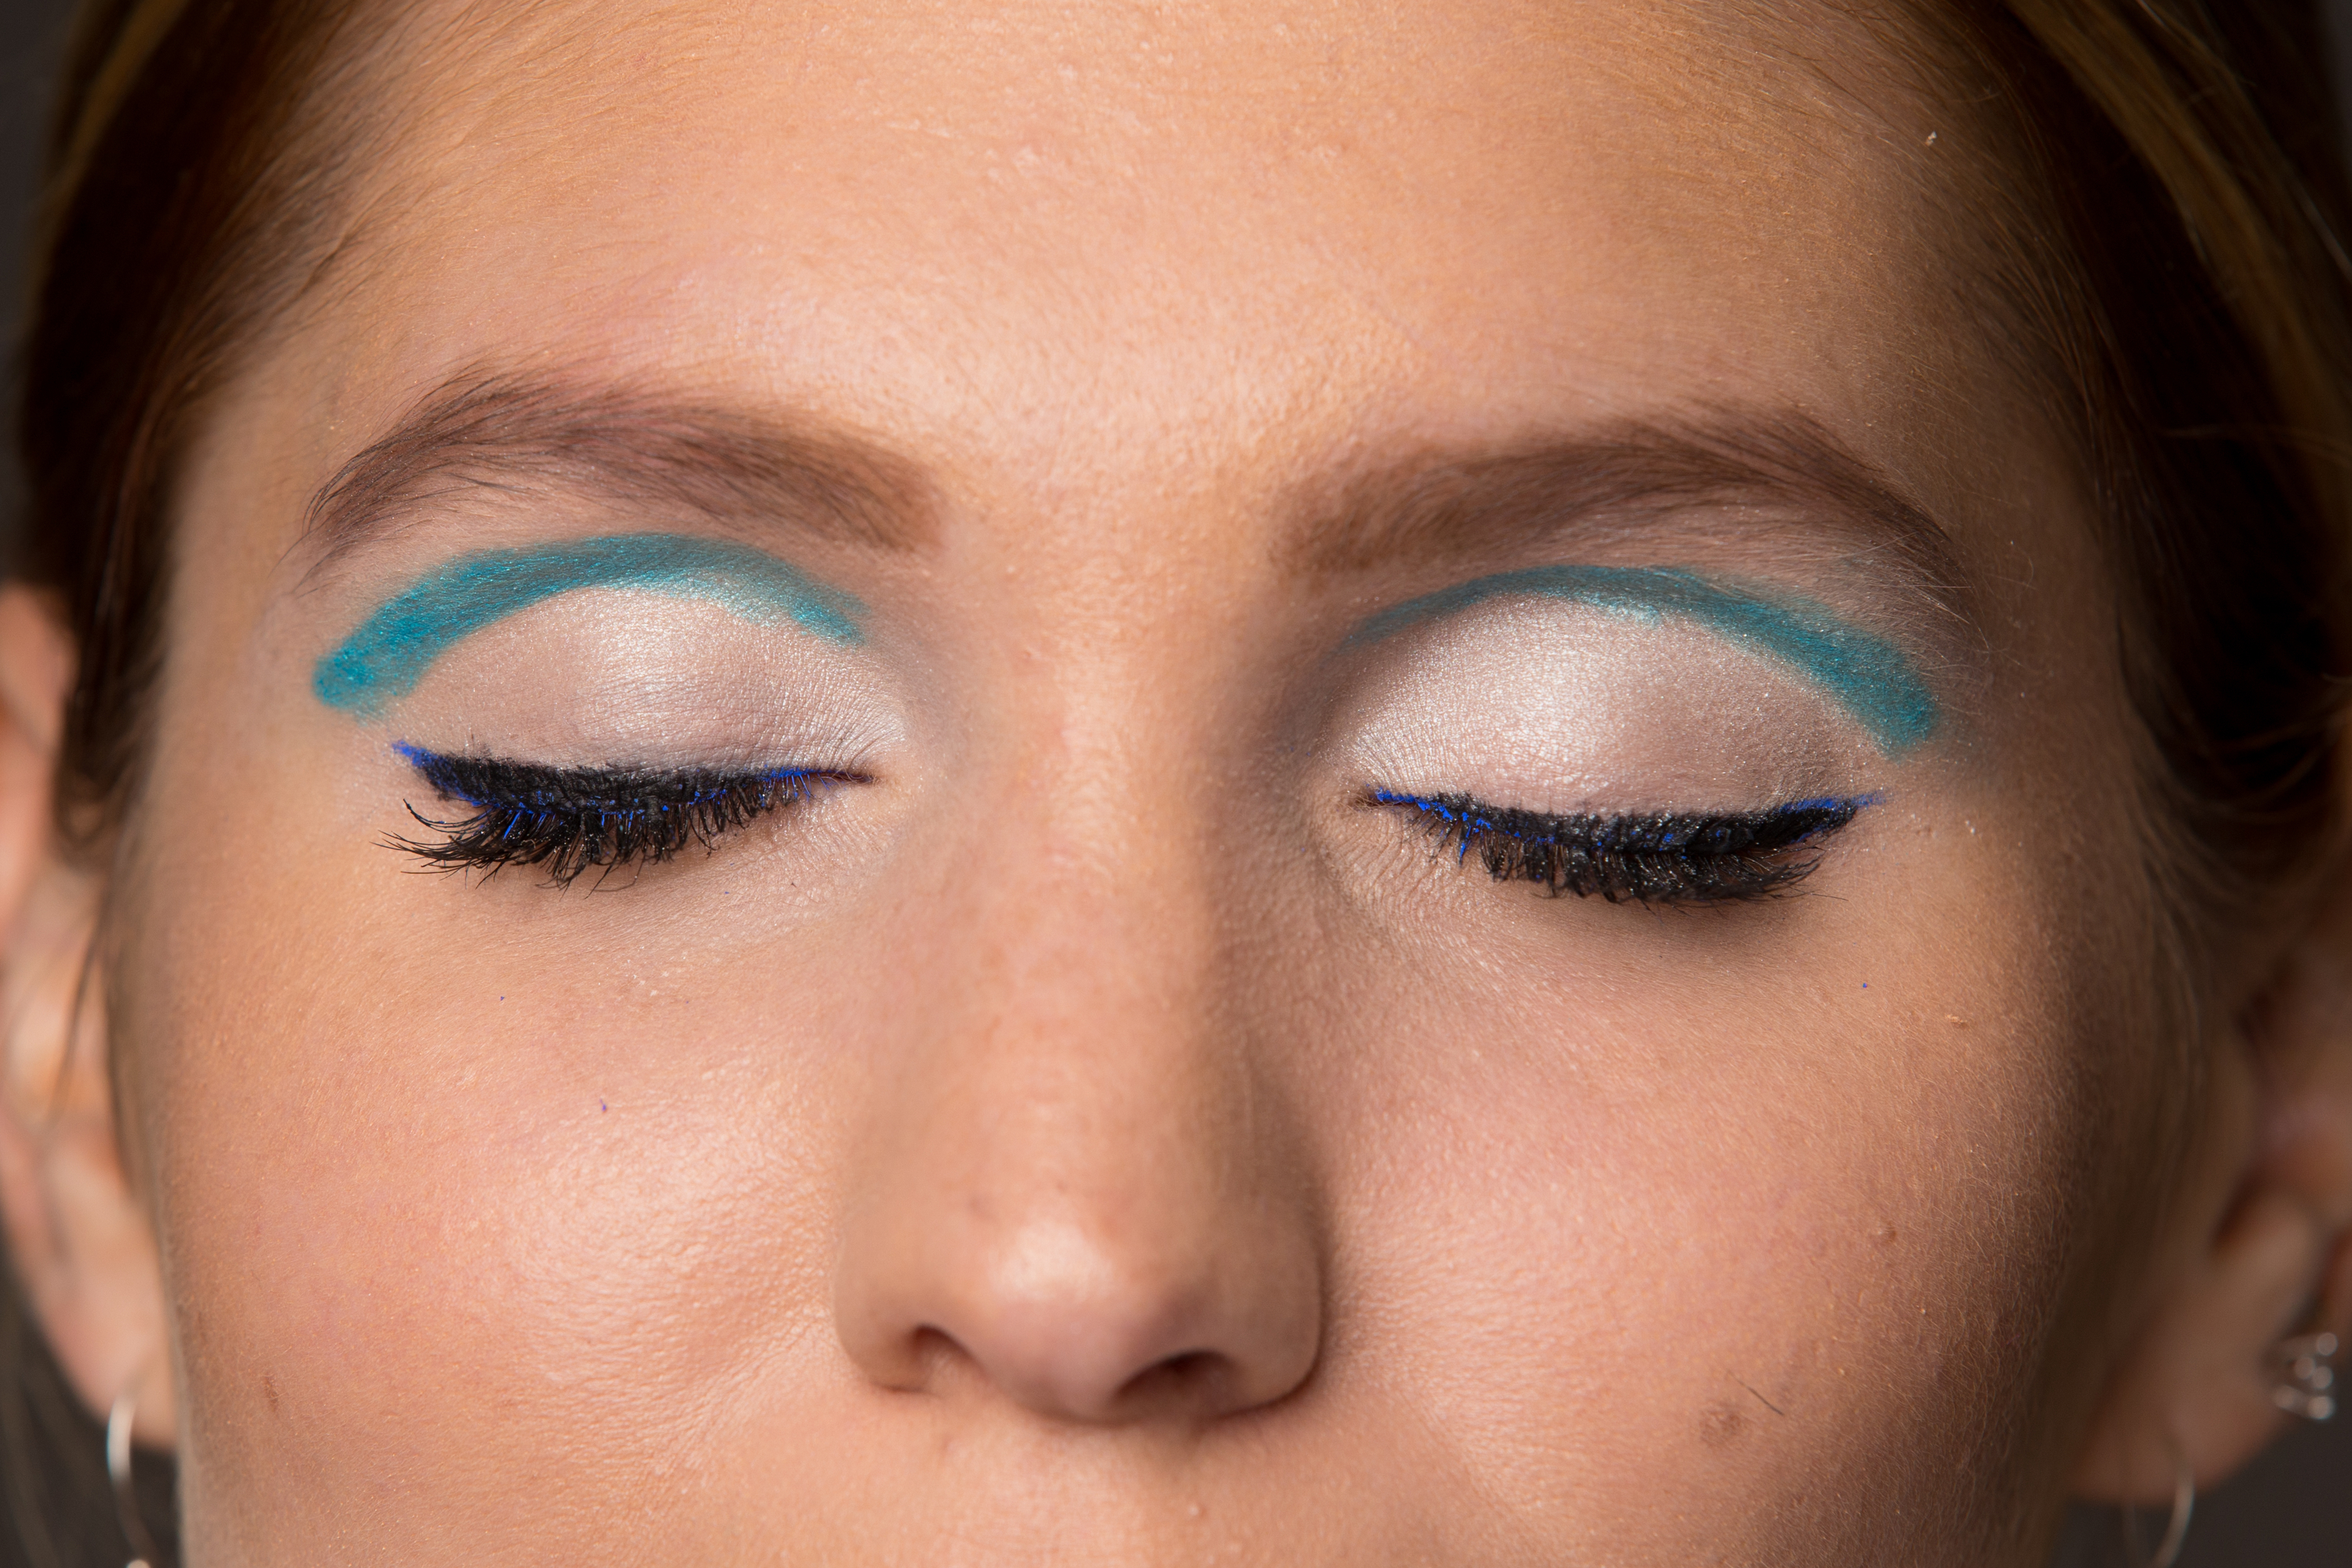 Kristen Sokac models turquoise floating crease eyeliner trend accented with highlighted lid Oct. 10, 2017. JESSICA GRIFFIN / Staff Photographer